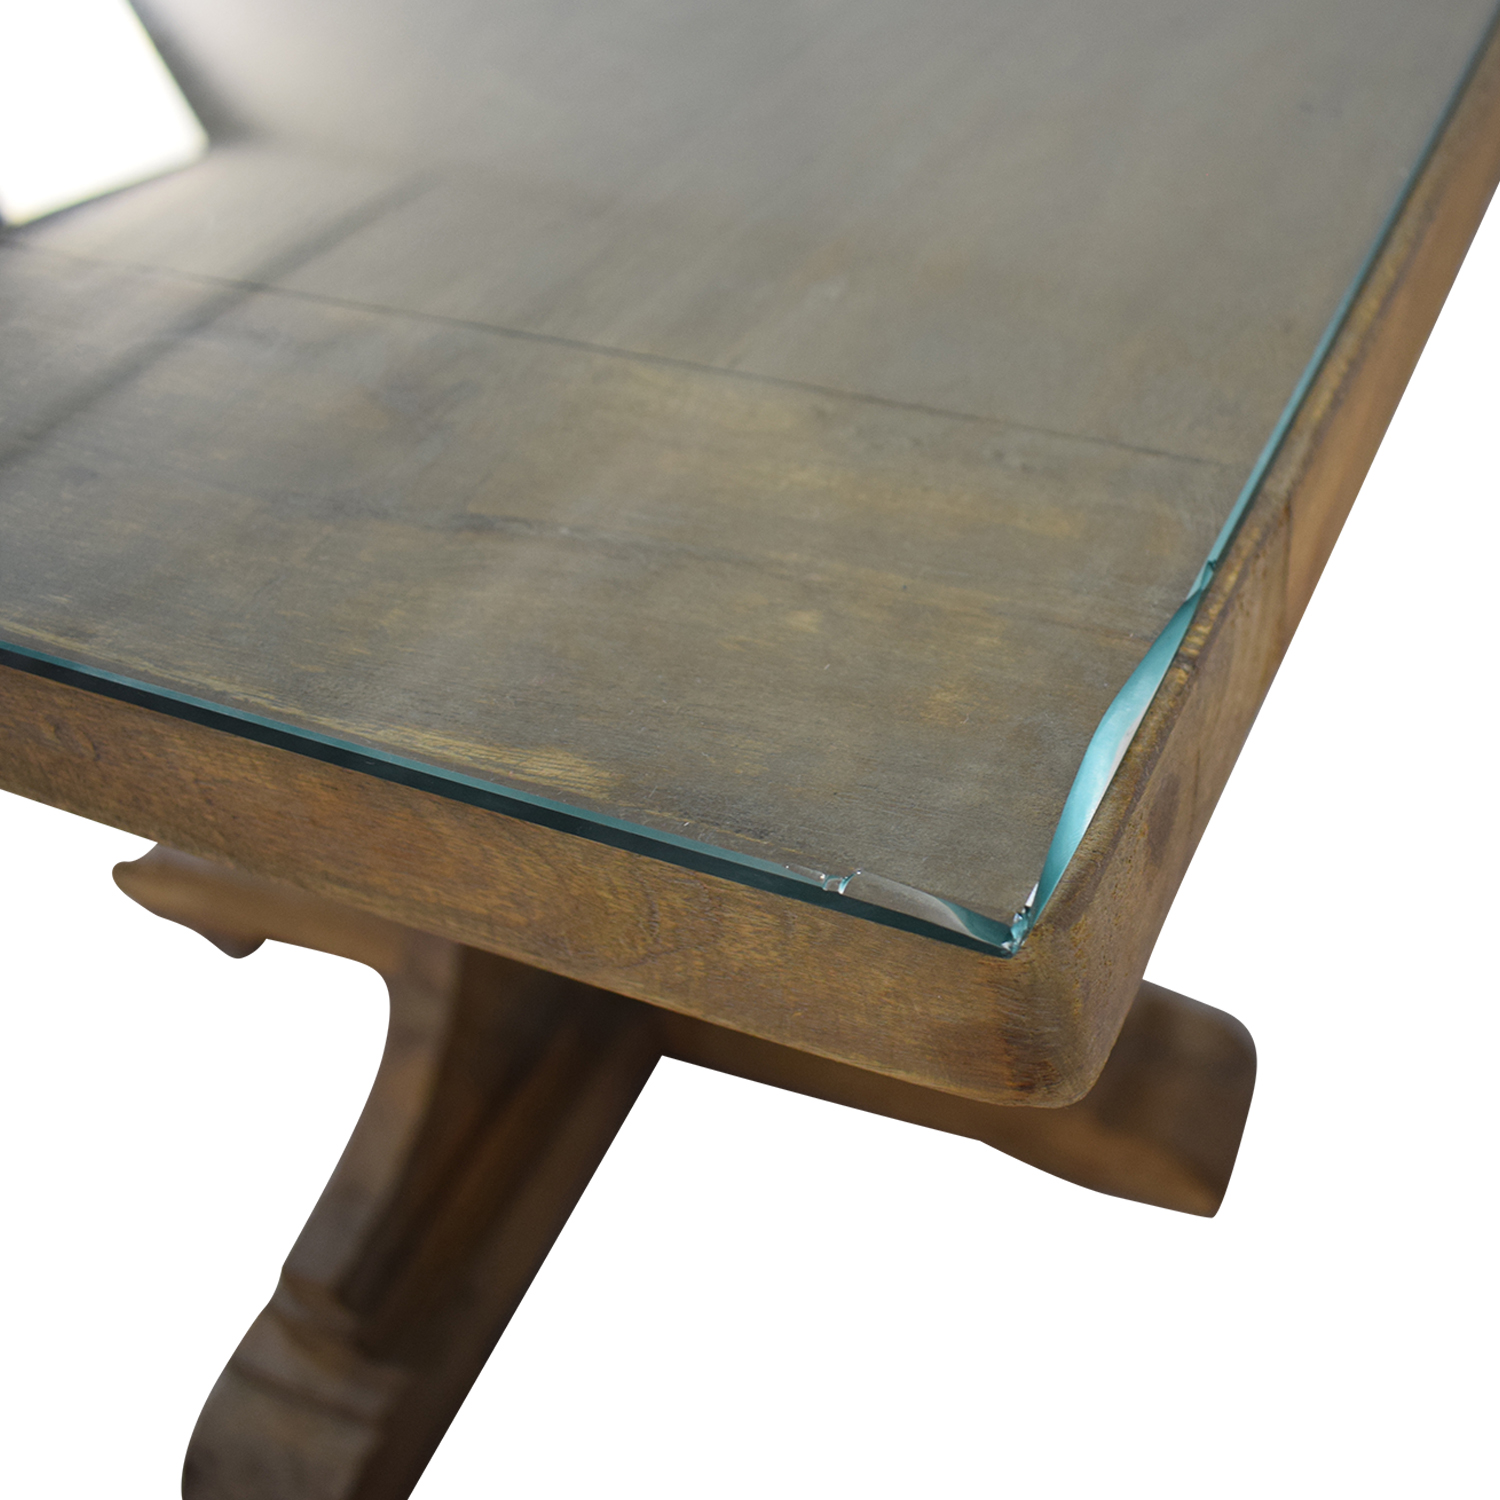 Handmade French Bracket Mango Wood Dining Table with Custom Glass Top nyc